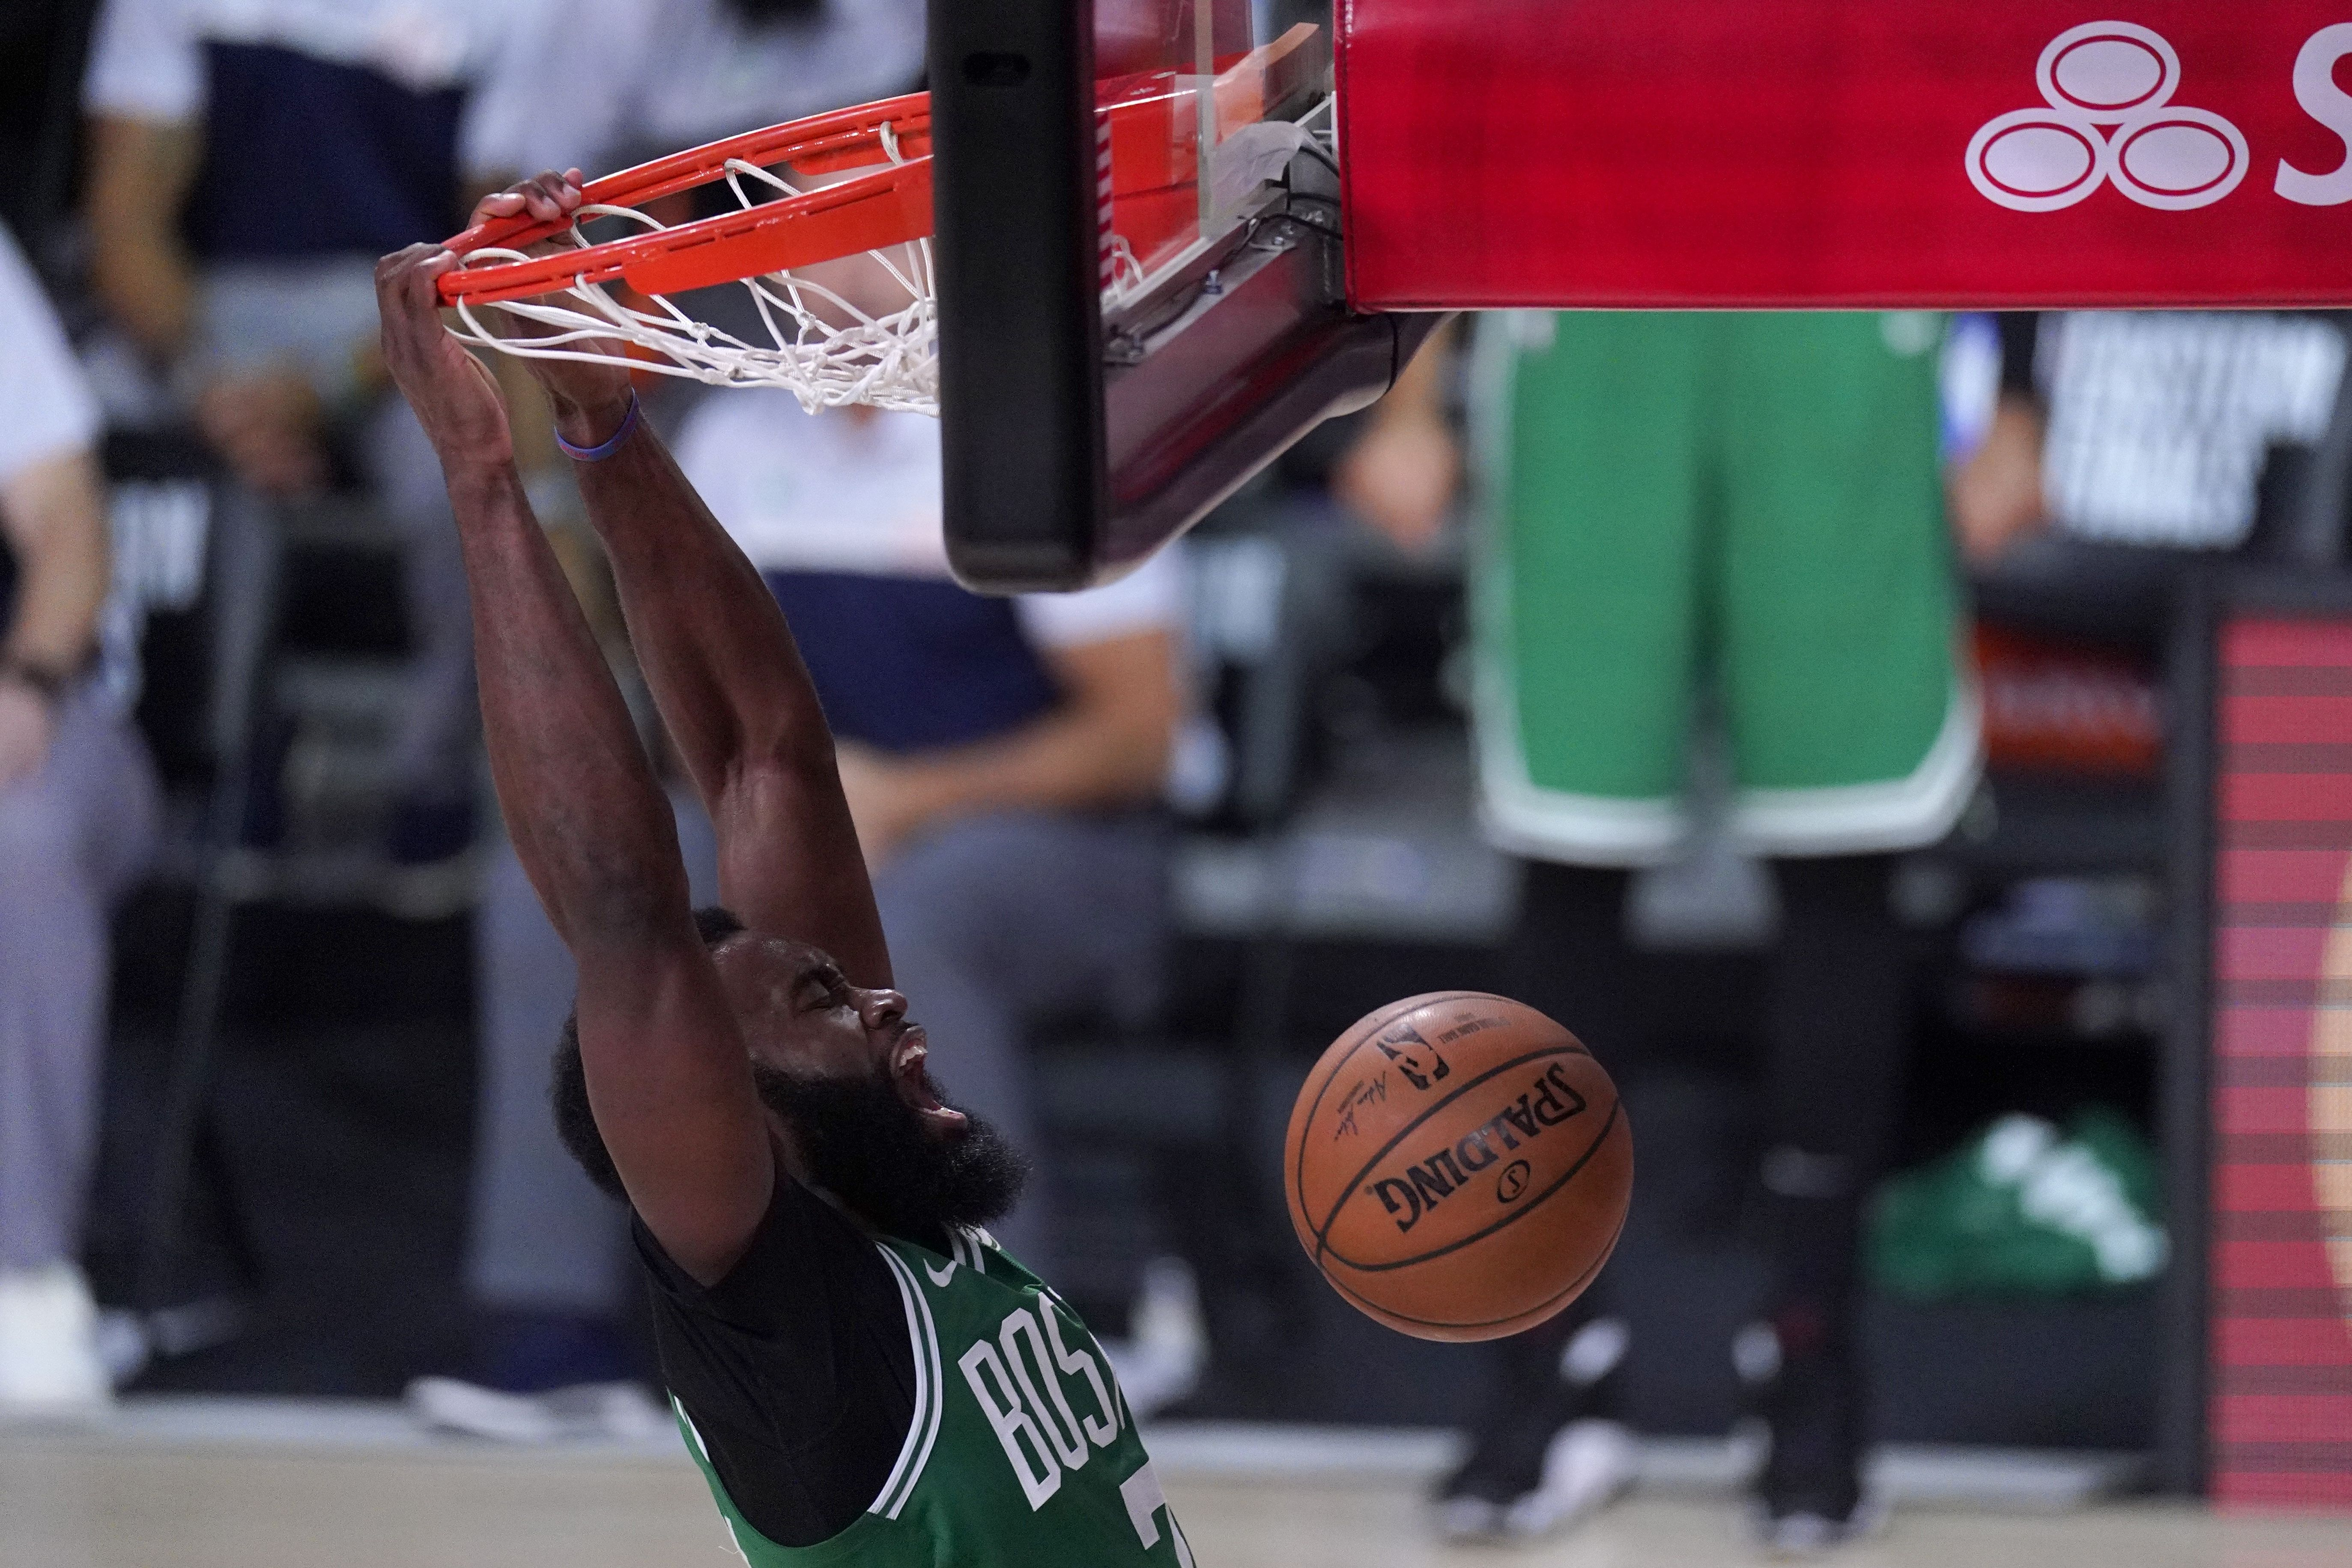 Boston Celtics Vs Miami Heat Game 4 Score Updates Odds Time Tv Channel How To Watch Free Live Stream Online 9 23 2020 Oregonlive Com